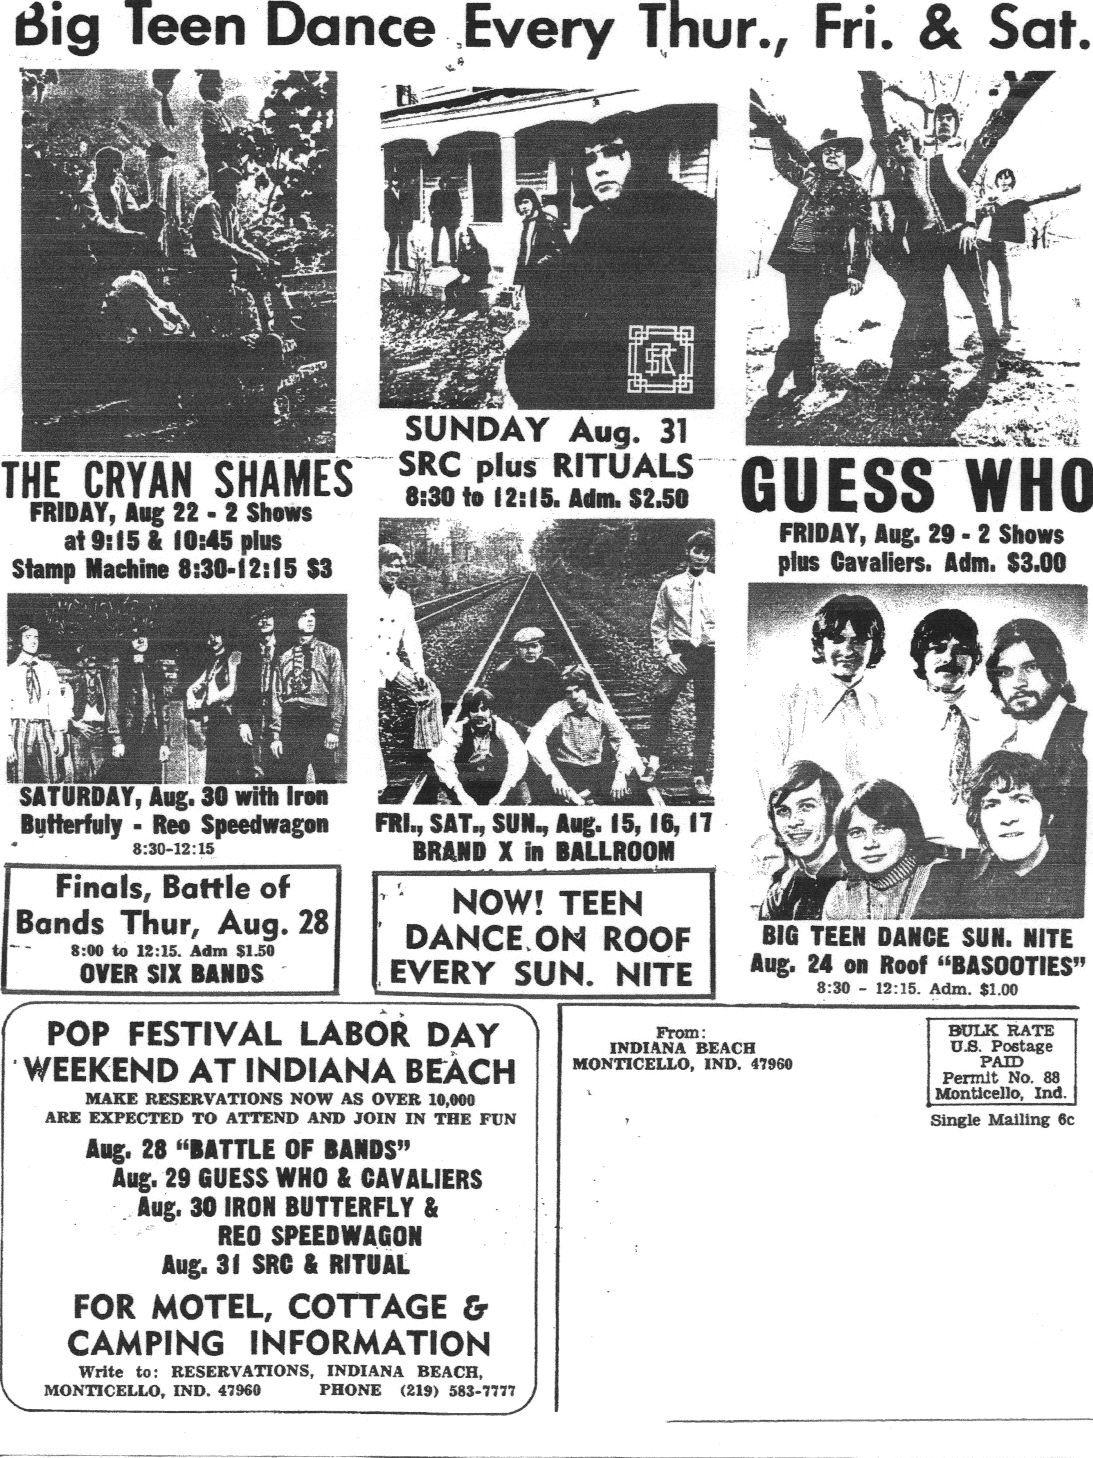 The Indiana Beach Amut Park Was Quite Szene In 60 S Check Out This Slice Of History August 68 And Look At Treasure Bands That